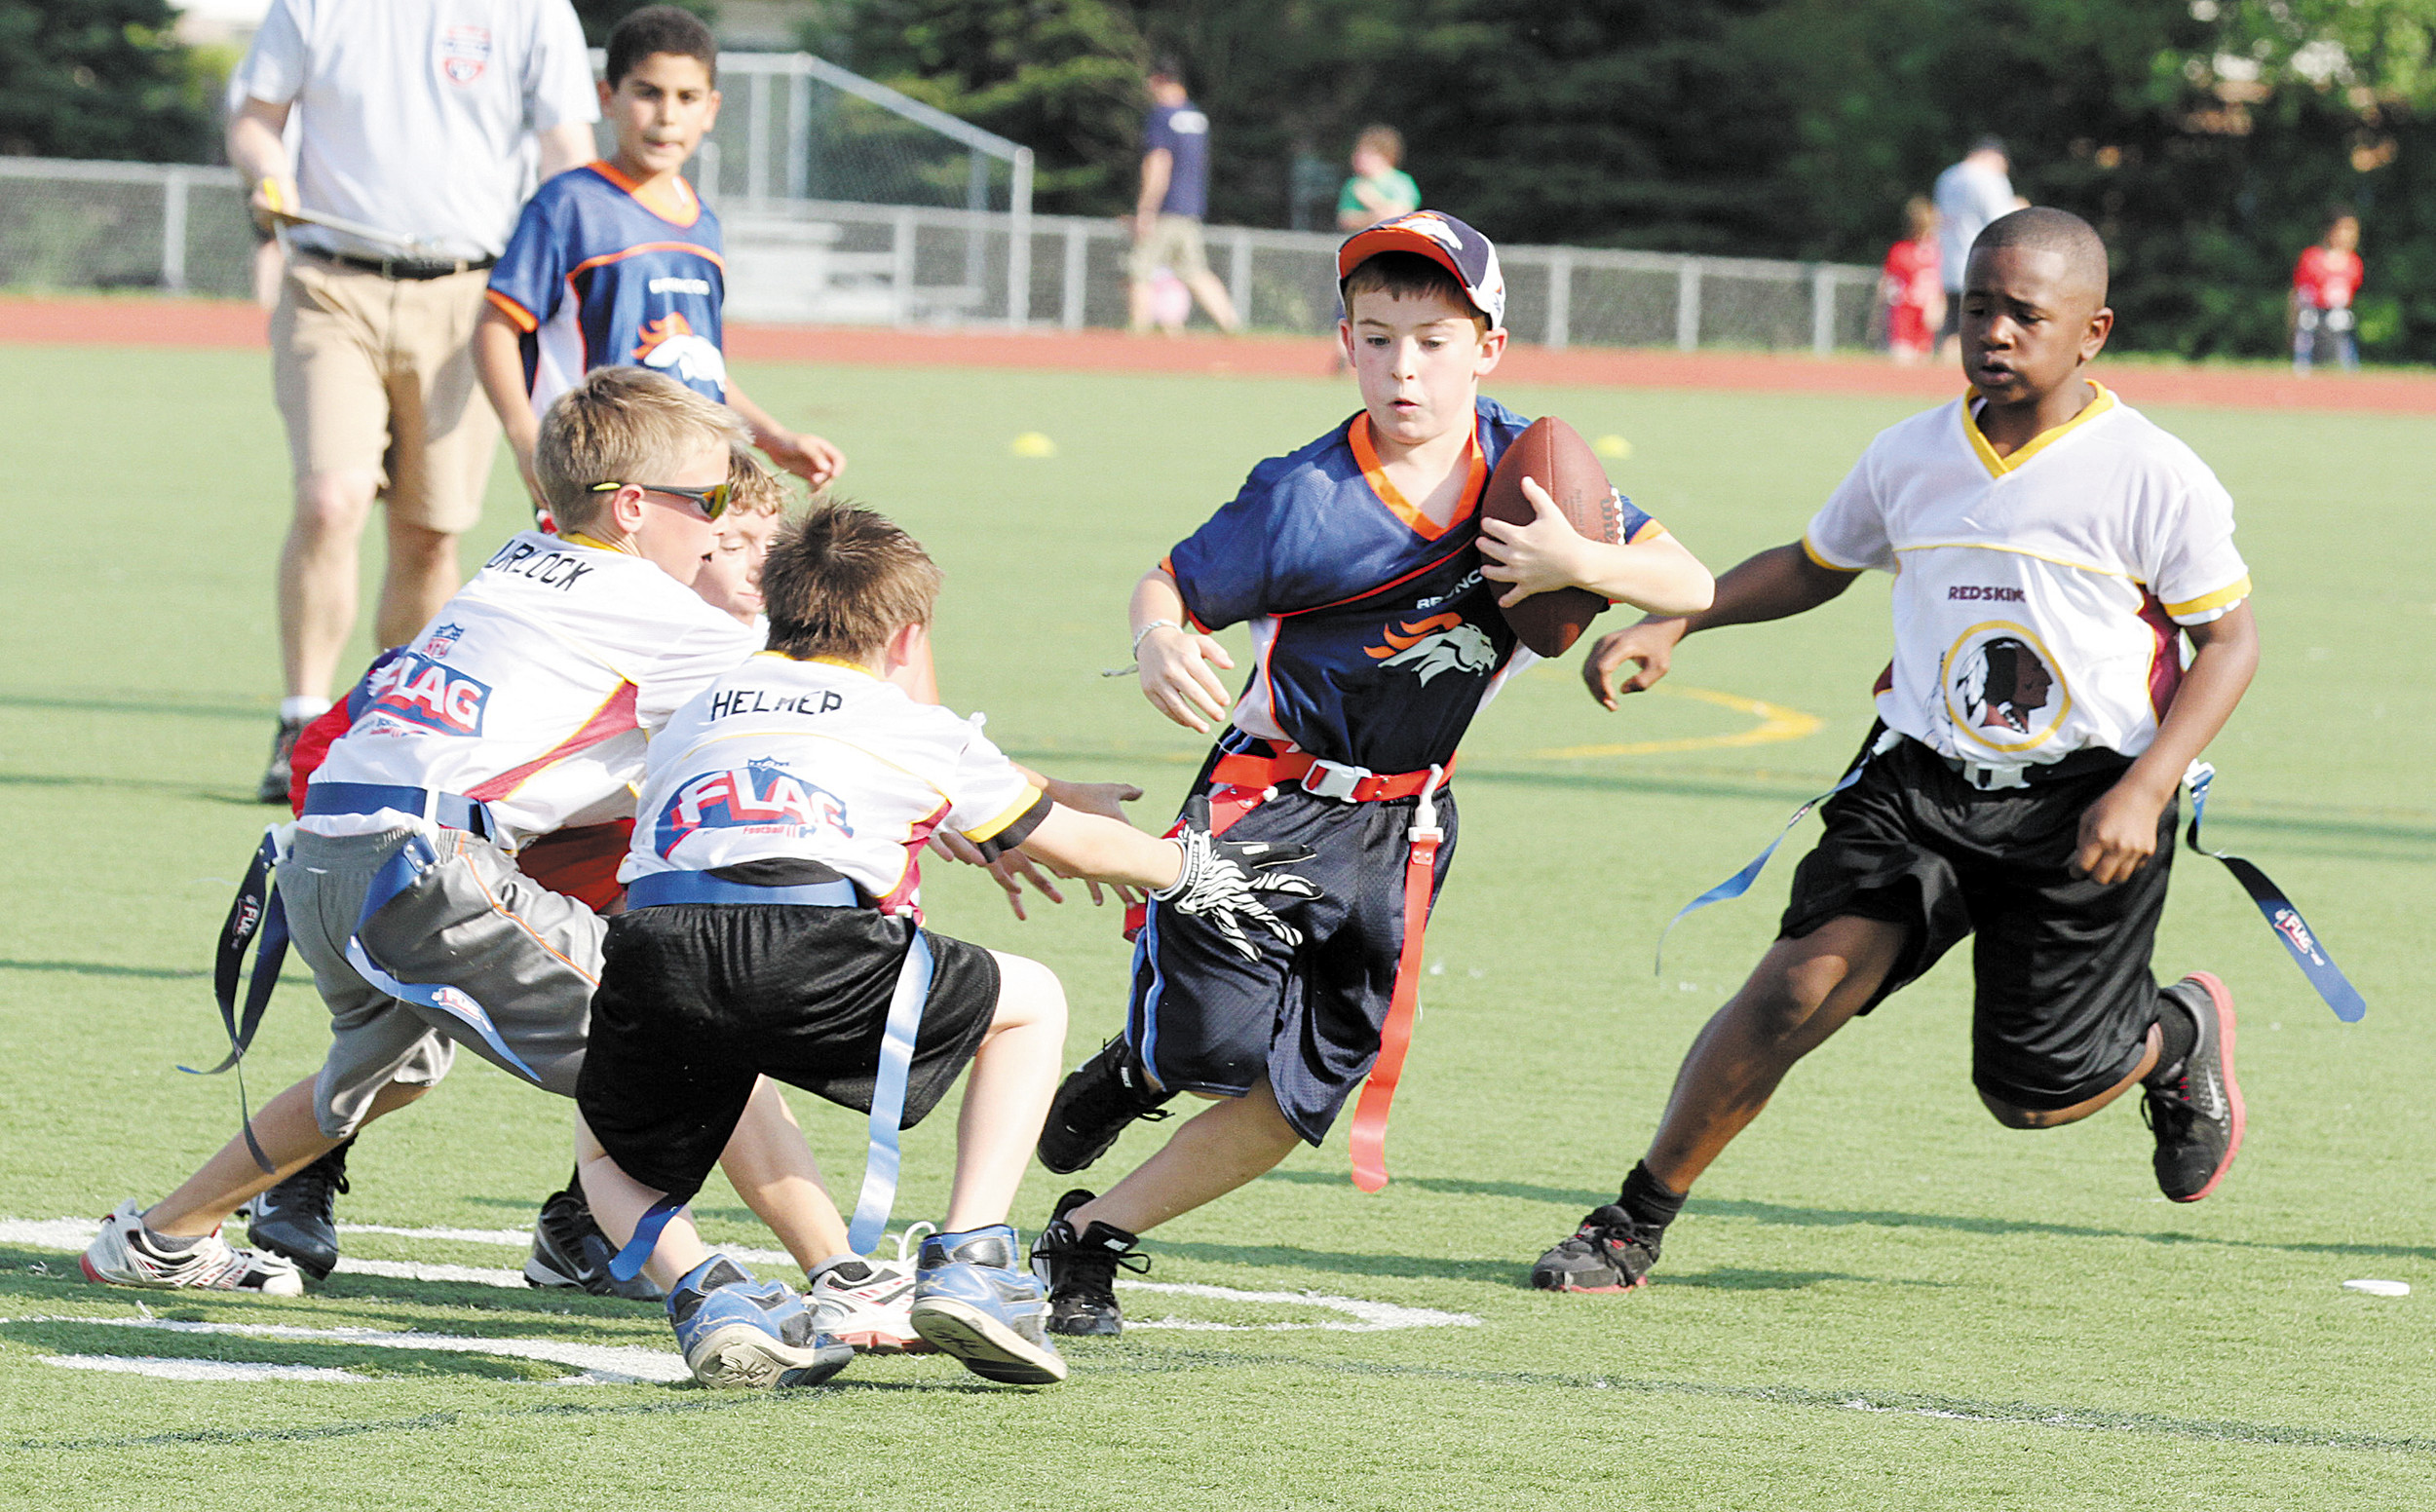 Boys compete in a National Flag Football game. National Flag Football, the largest youth football league in the nation is debuting in Colorado this spring and will offer to locations in the north metro area, one at Five Star Stadium in Thornton and the other at Broomfield High School.